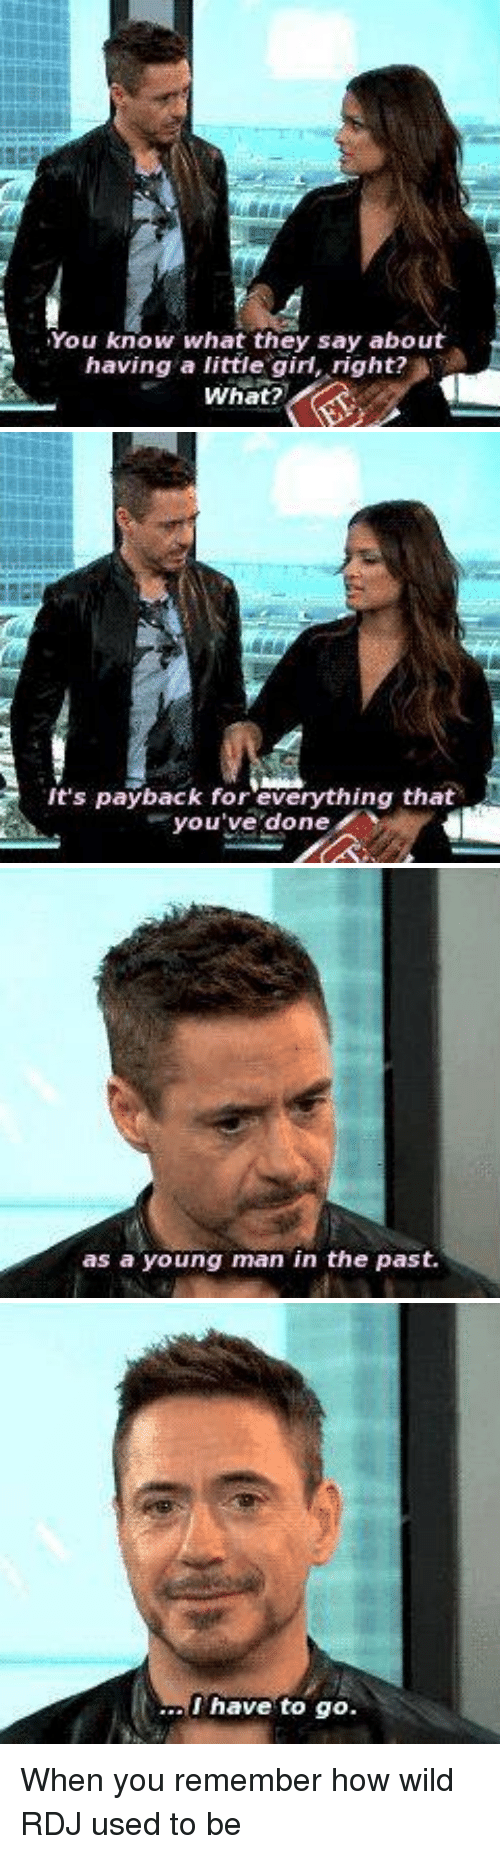 payback: You know what they say about  having a little gil, right?  What?   it's payback for everything that  you've done   as a young man in the past.   I have to go. When you remember how wild RDJ used to be